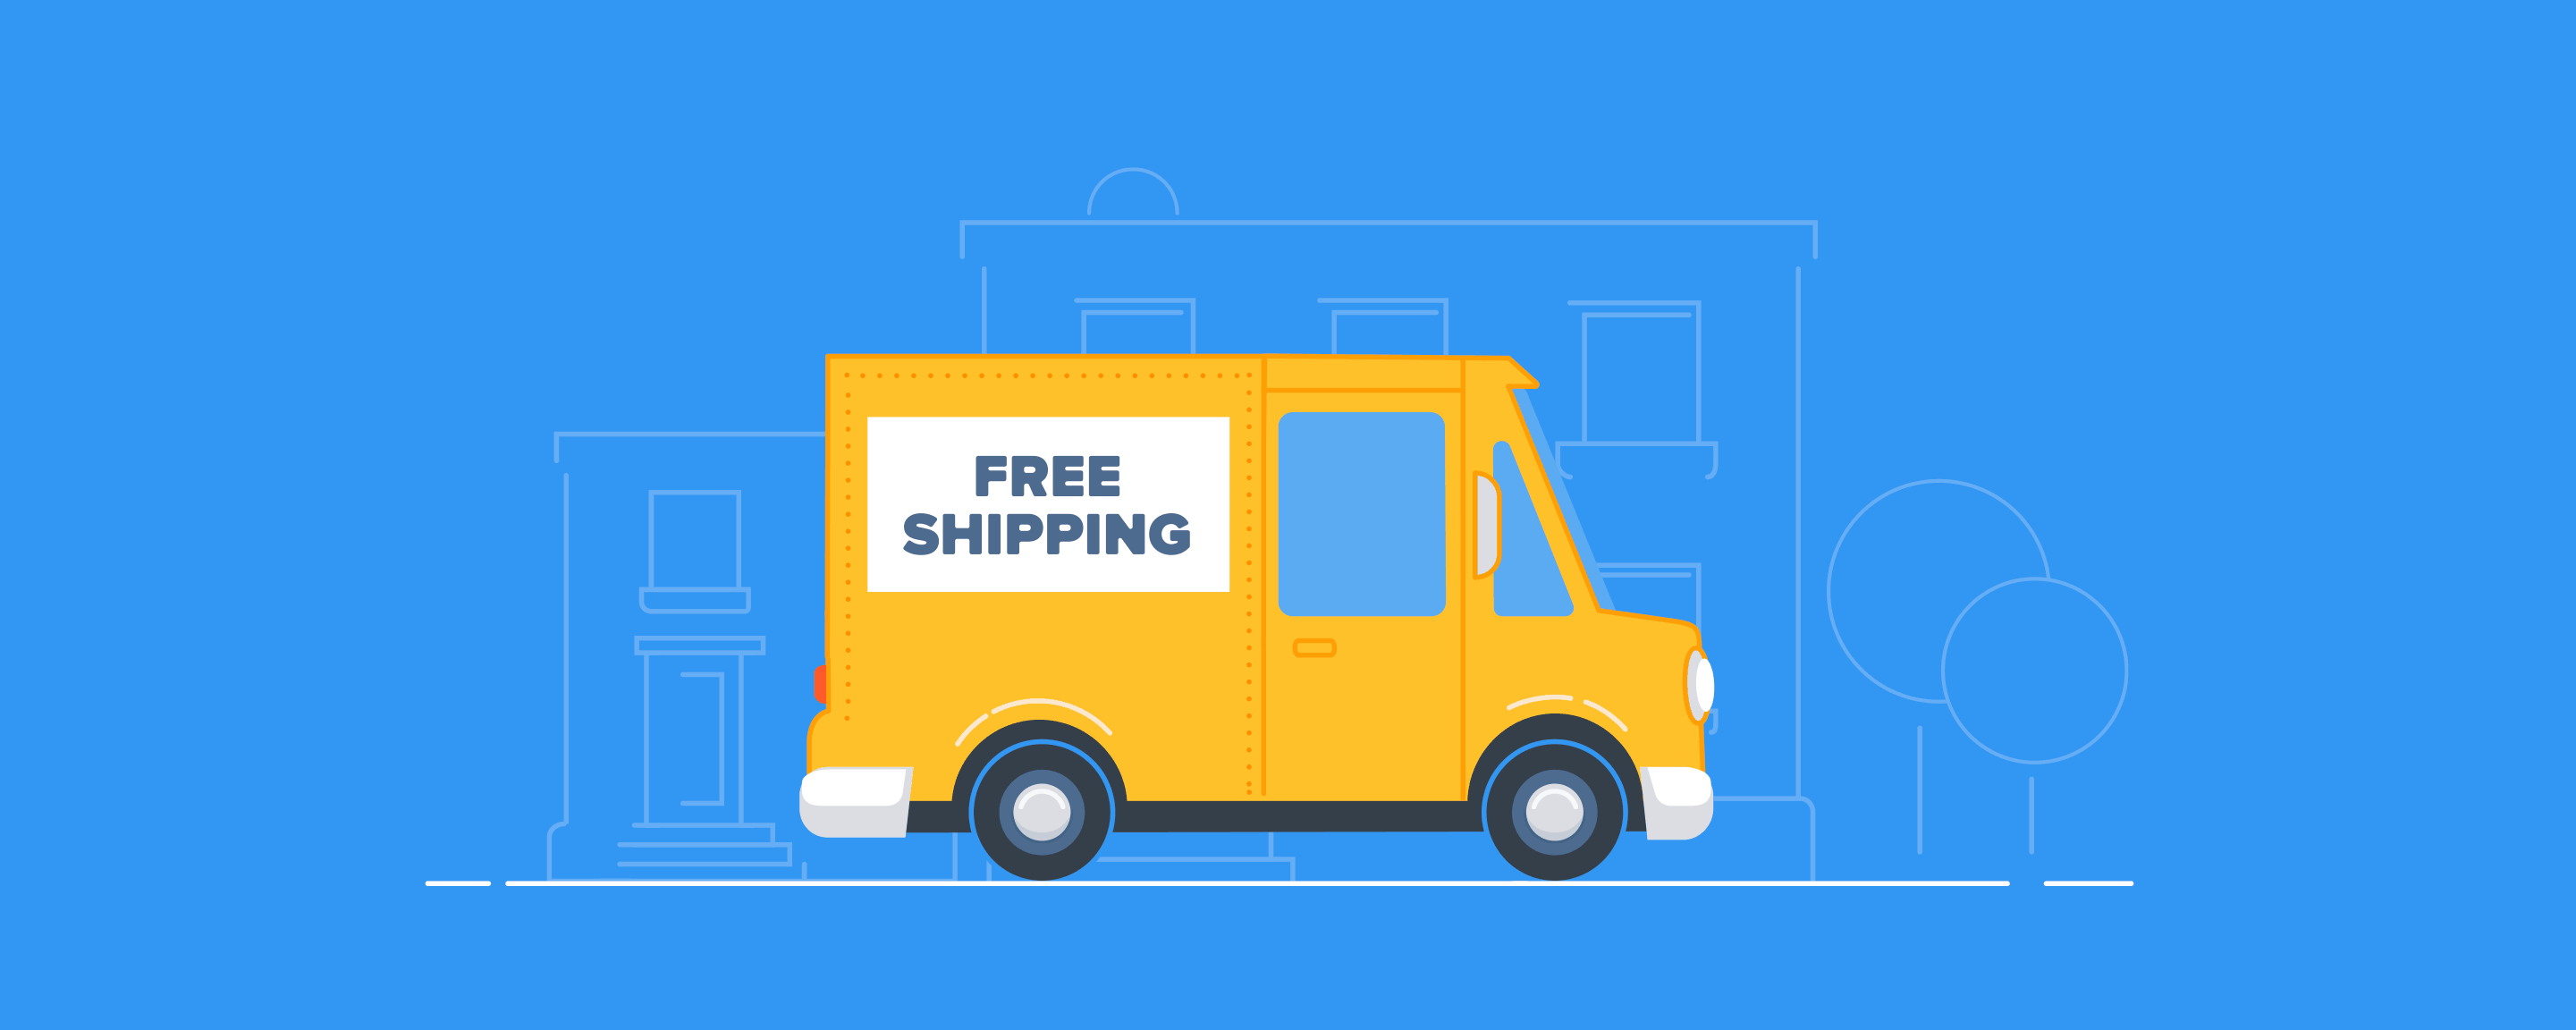 How to market free shipping 1